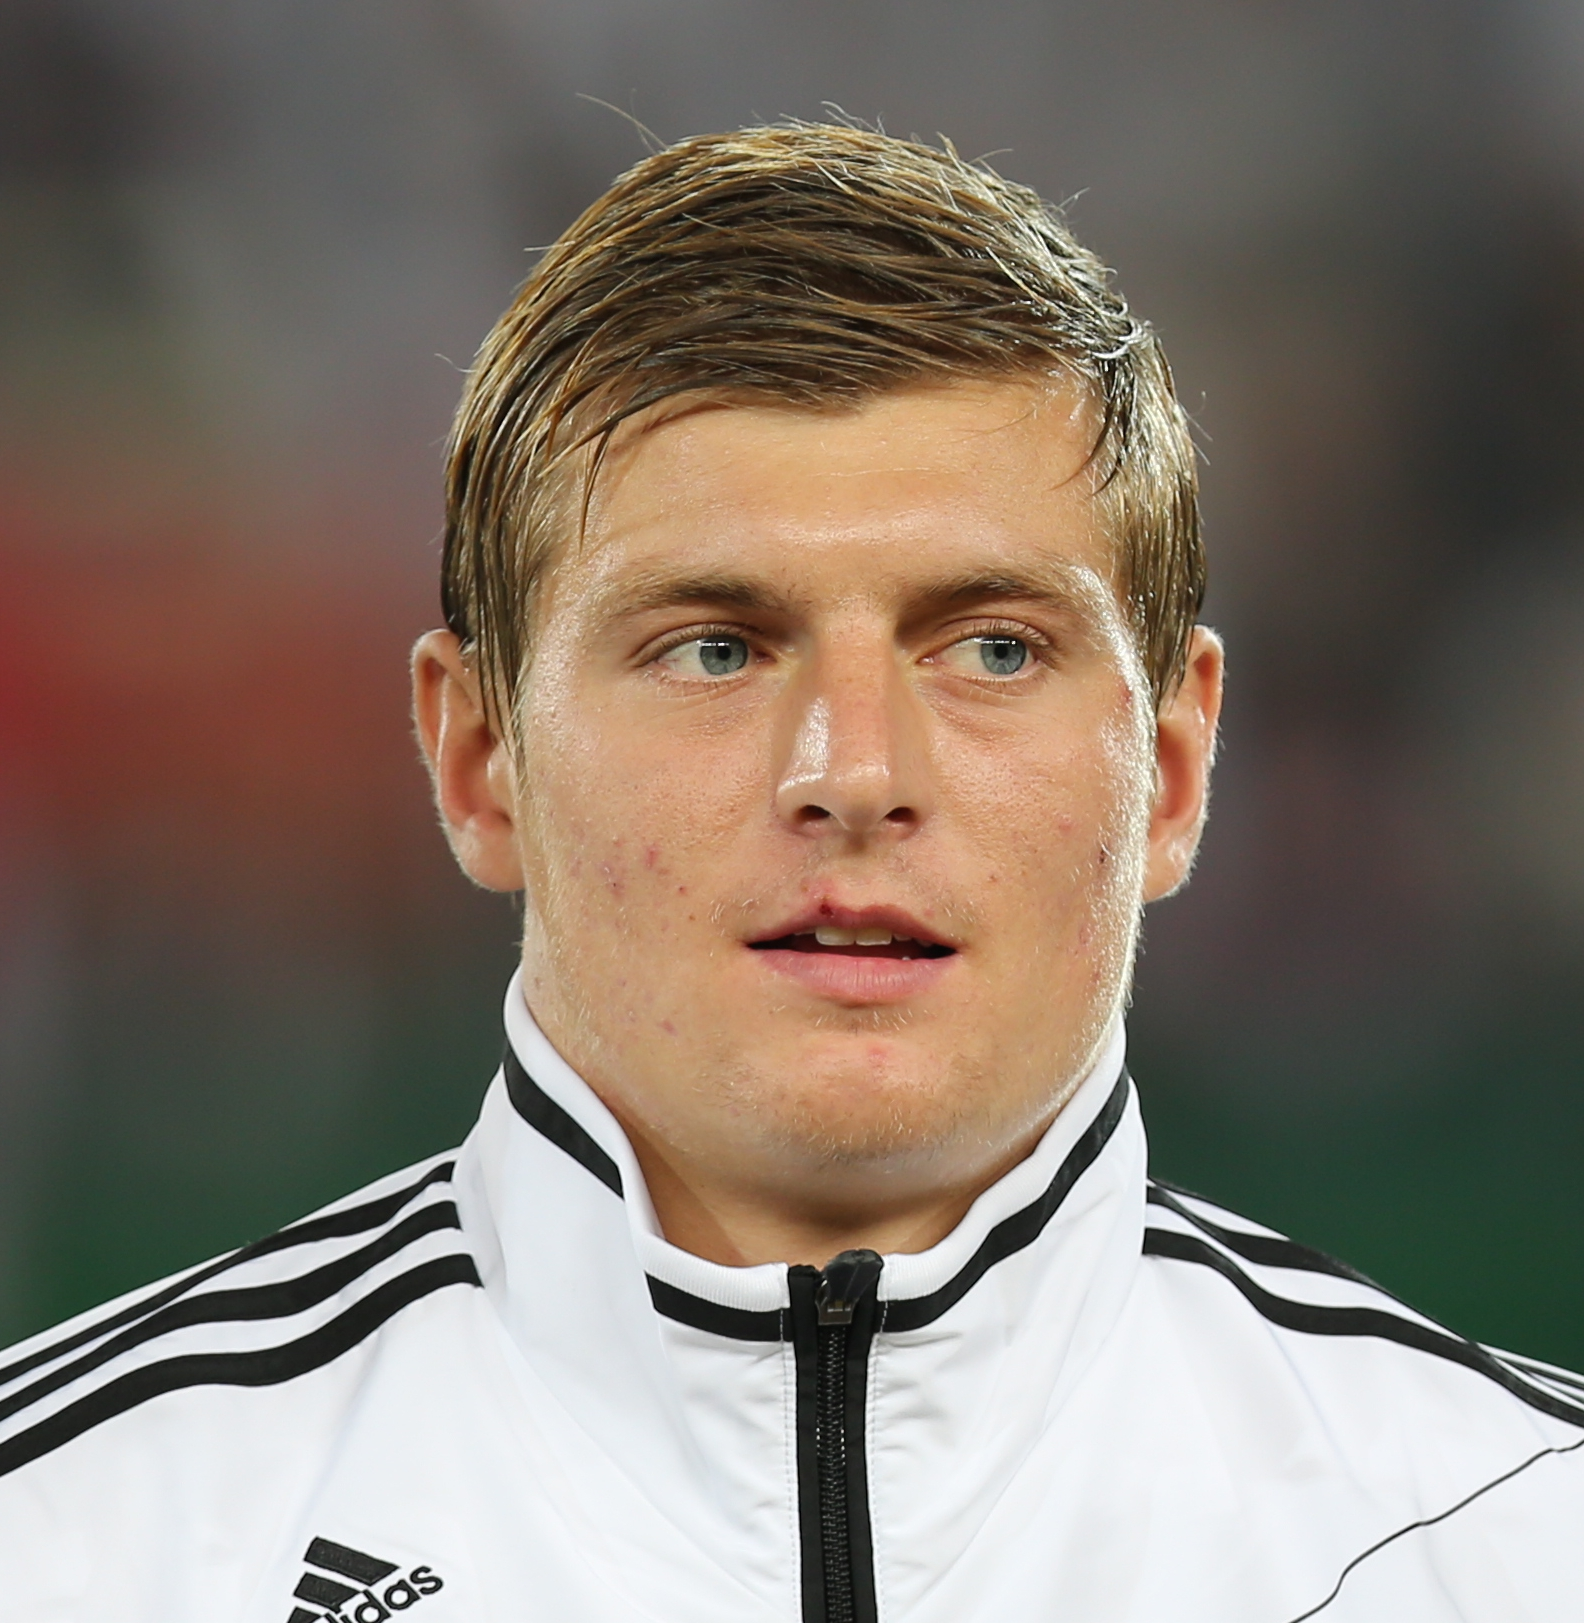 Toni Kroos - Simple English Wikipedia, the free encyclopedia